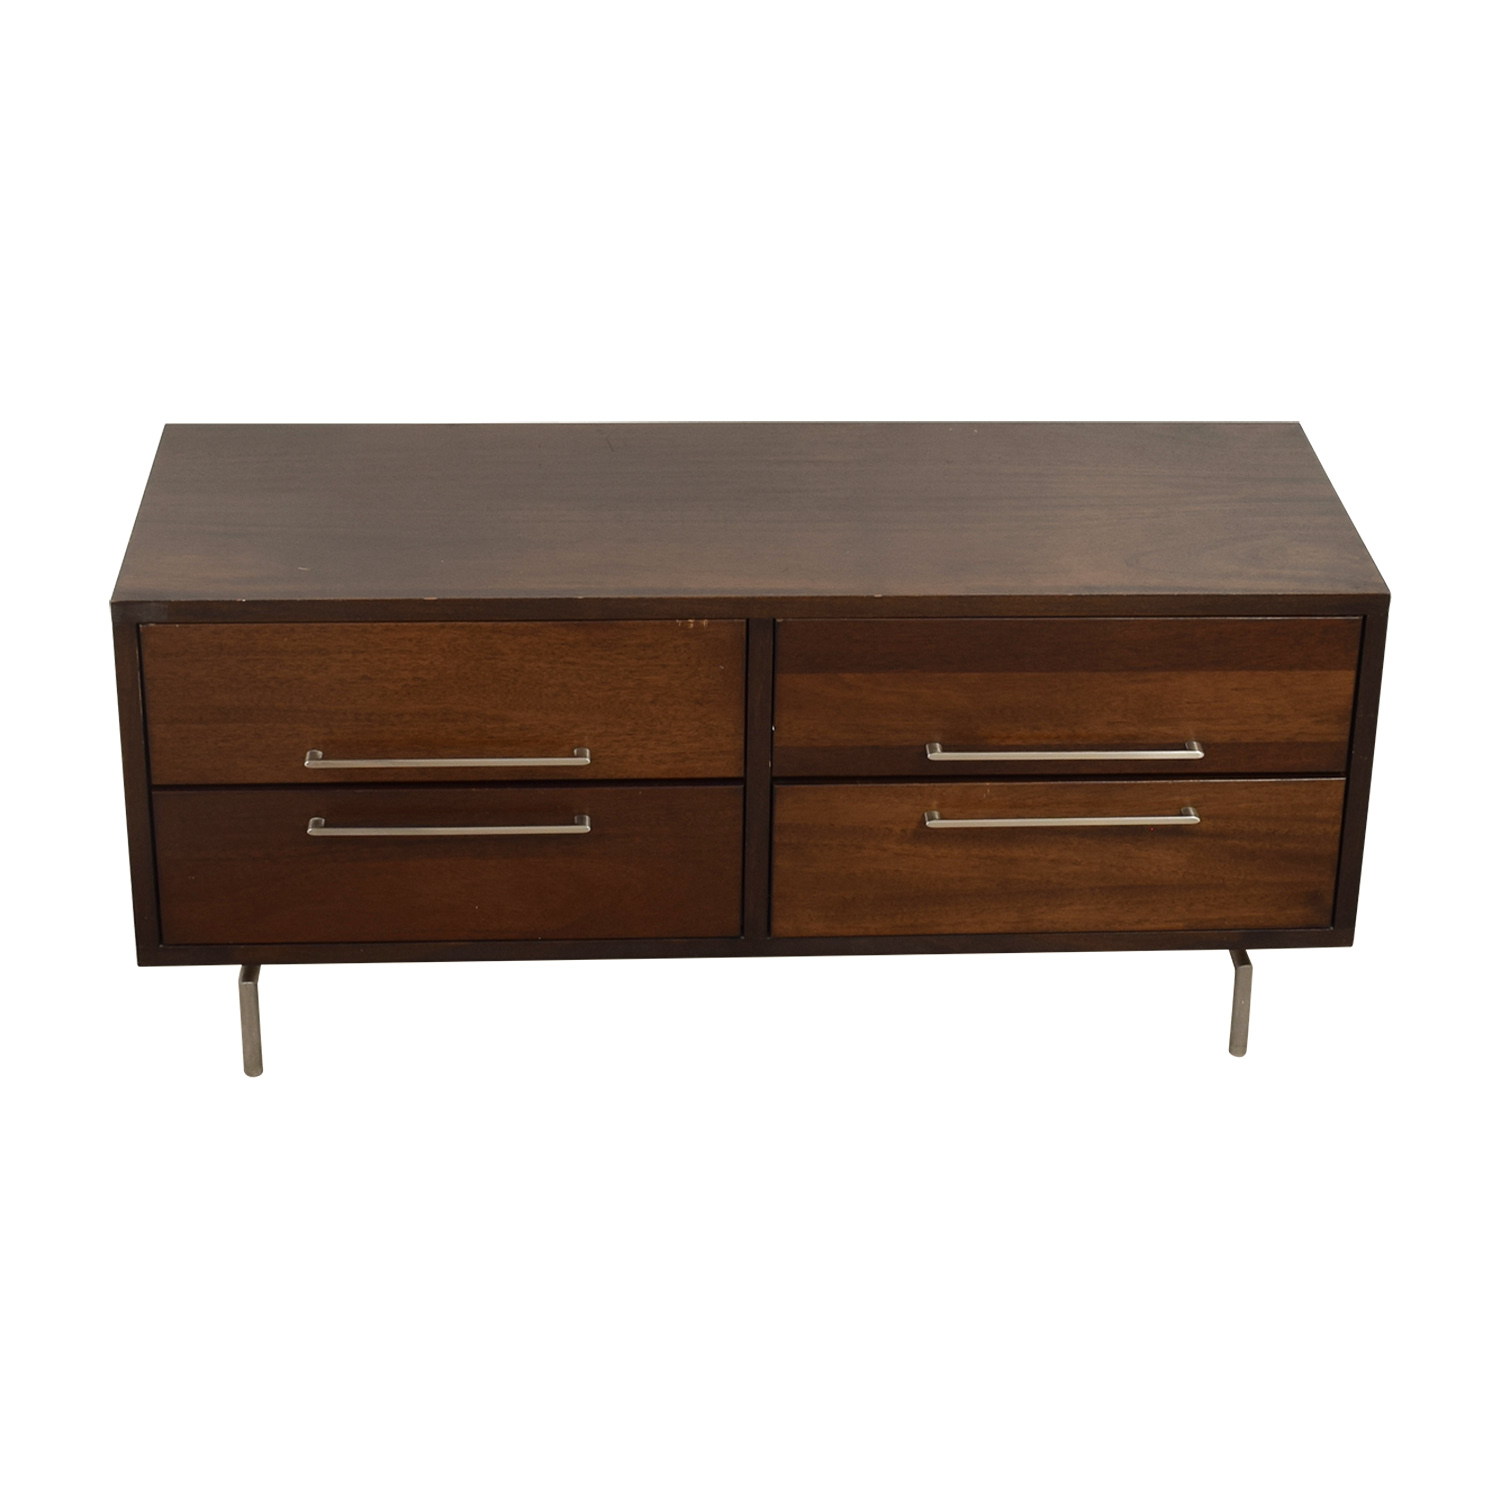 Room & Board Wood TV Console sale